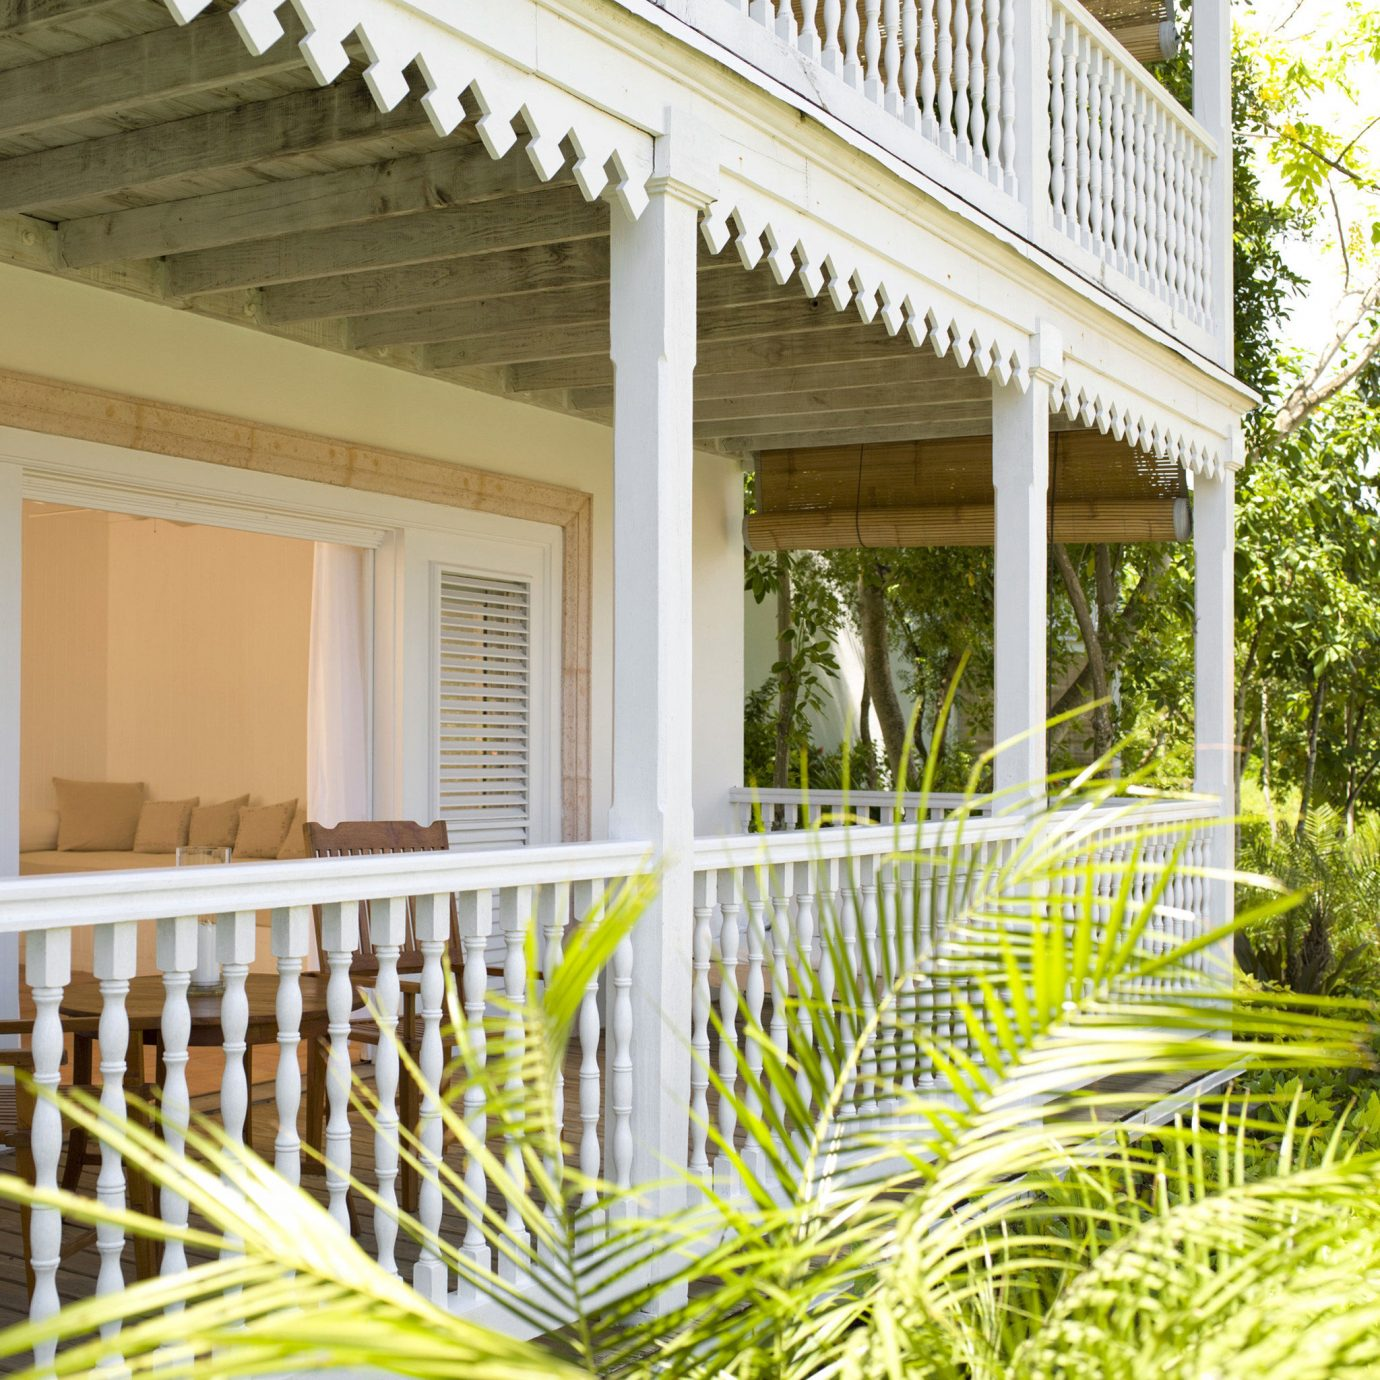 Beachfront Buildings Deck Luxury Resort building porch property house home yellow outdoor structure cottage backyard Villa